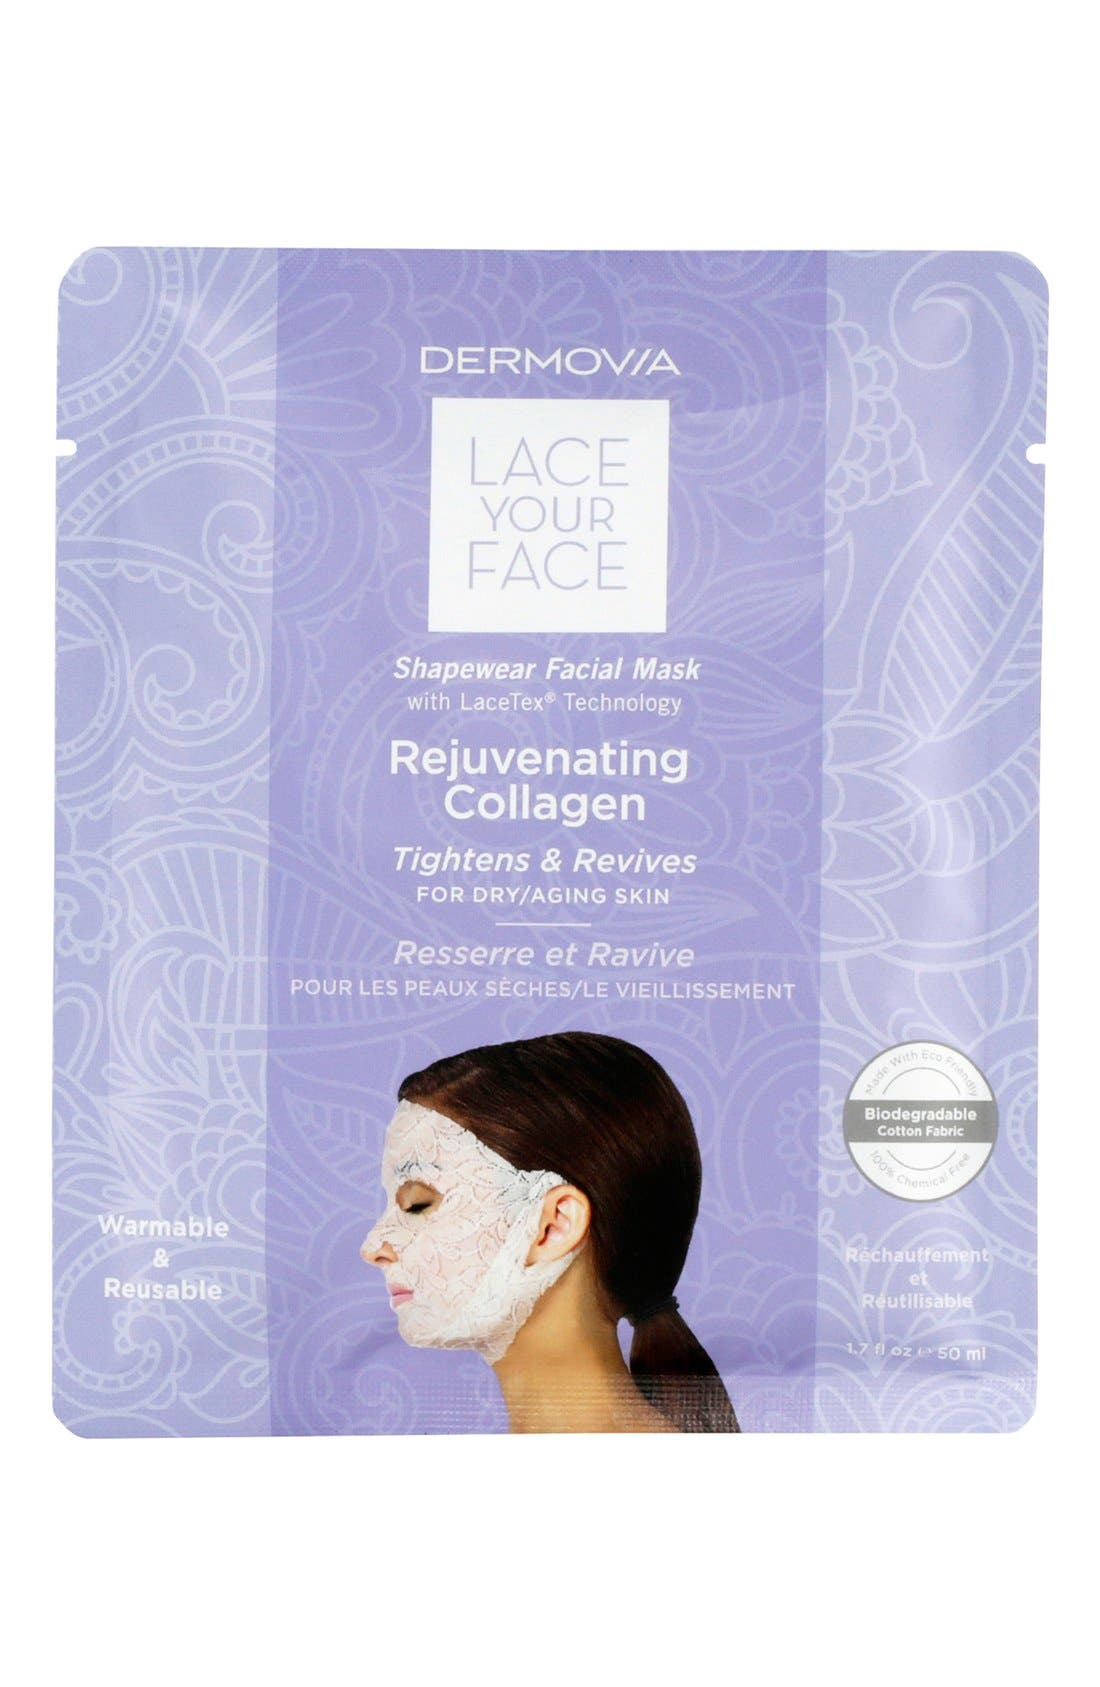 Dermovia Lace Your Face Rejuvenating Collagen Compression Facial Mask (Nordstrom Exclusive)